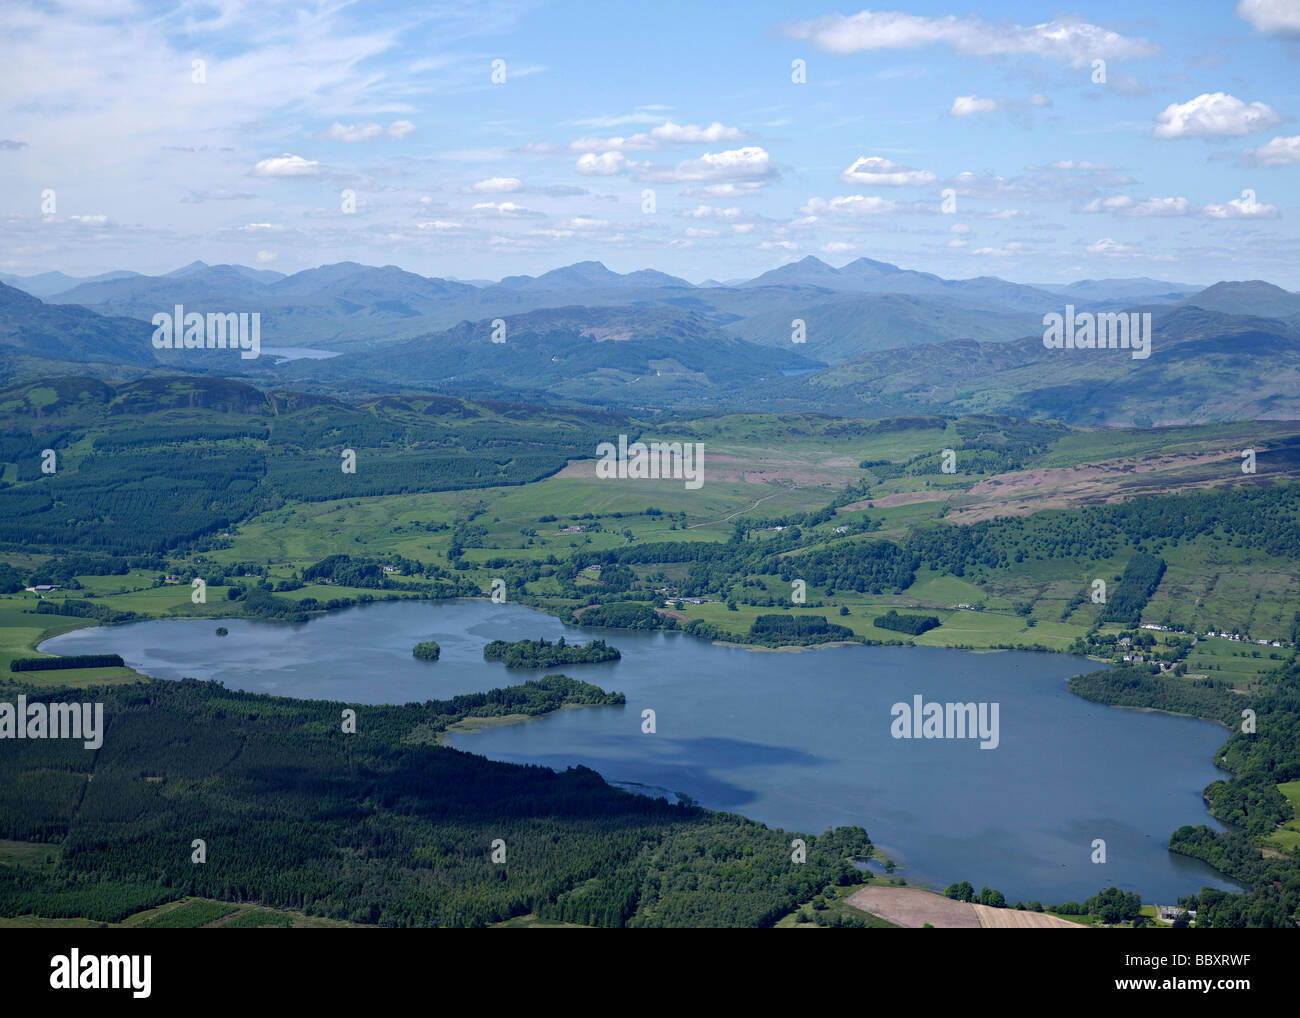 The Lake of Monteith, Stirling, Western Scotland, with the Trossachs behind - Stock Image